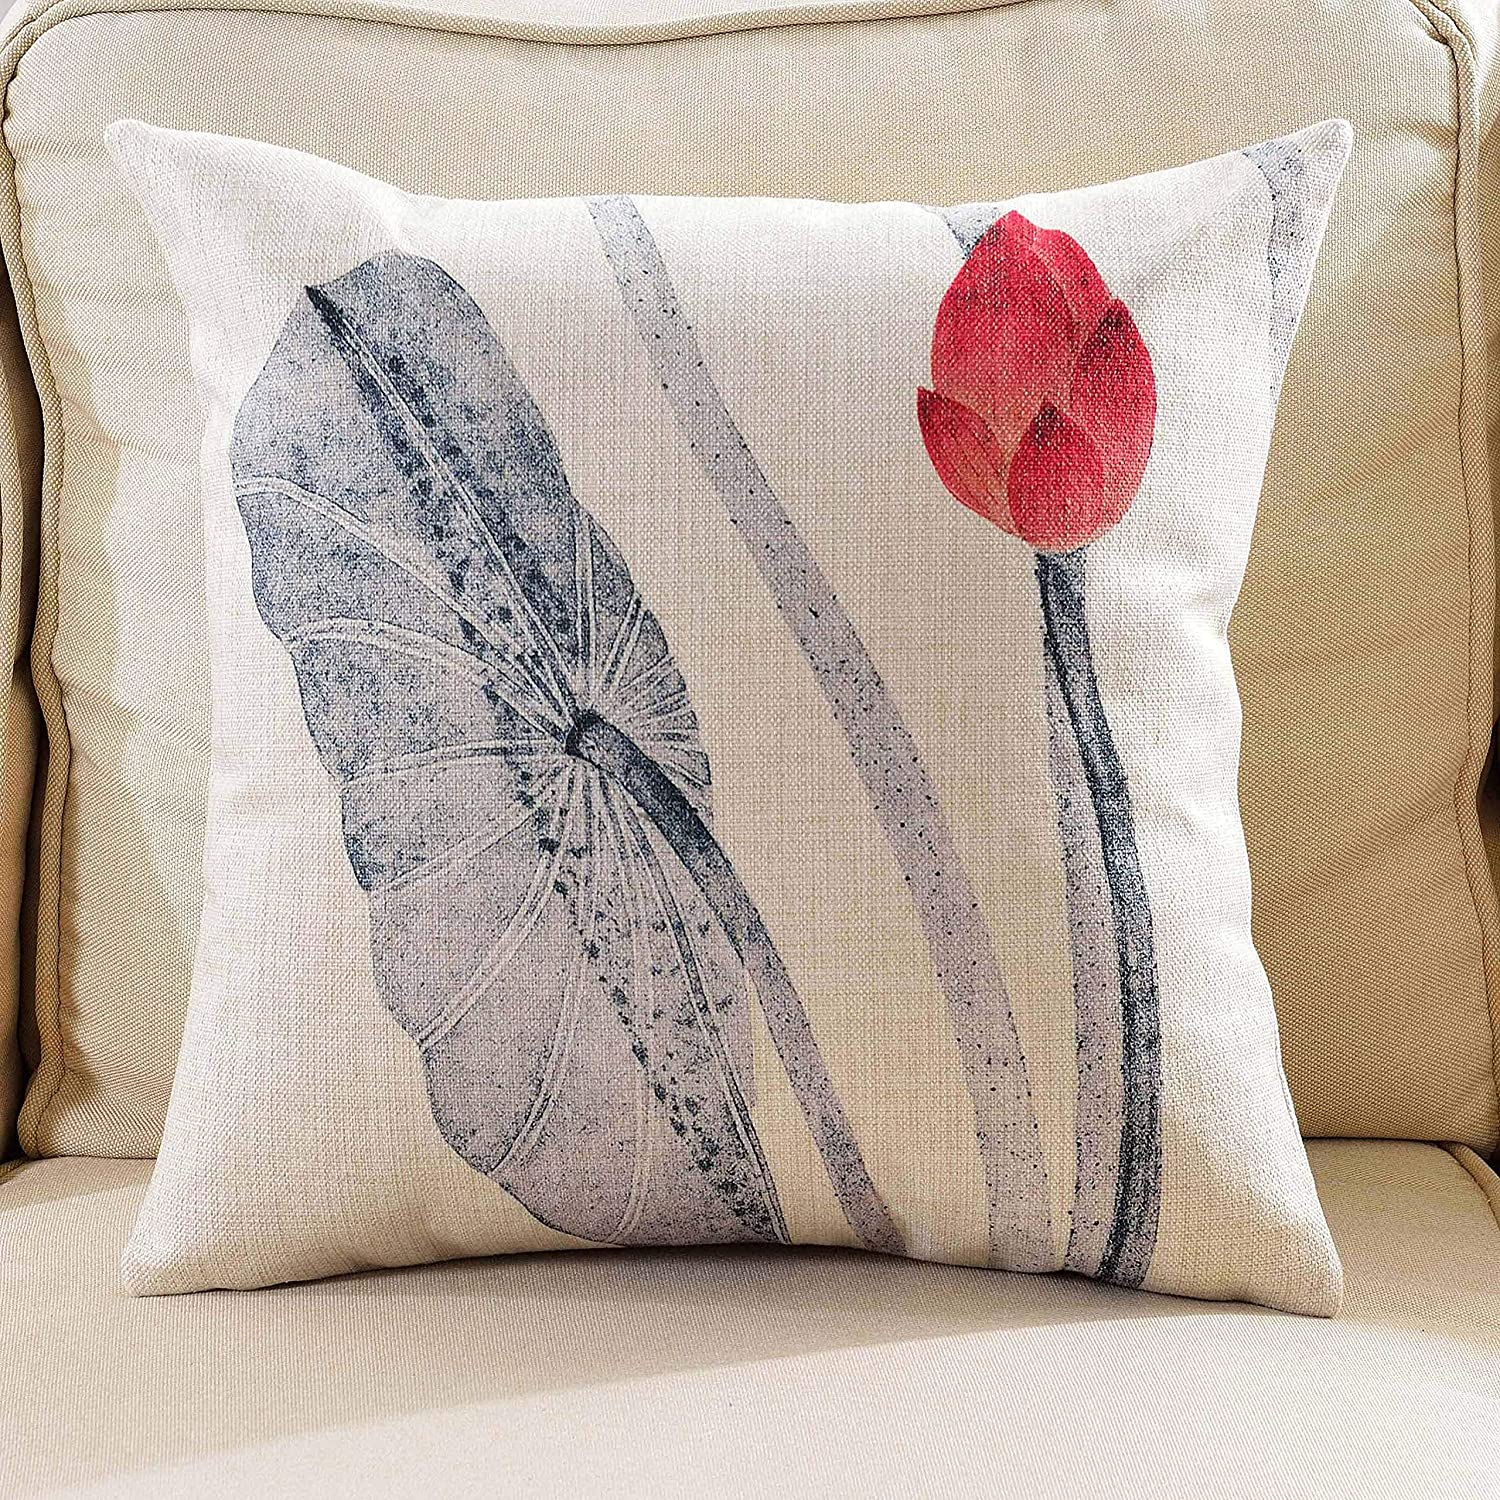 Lotus Bud 12X20 OSVINO Chinese Ink Wash Painting Style Lotus Series Throw Pillow Case Sham Cushion Cover for Home Sofa Bed Office D/écor